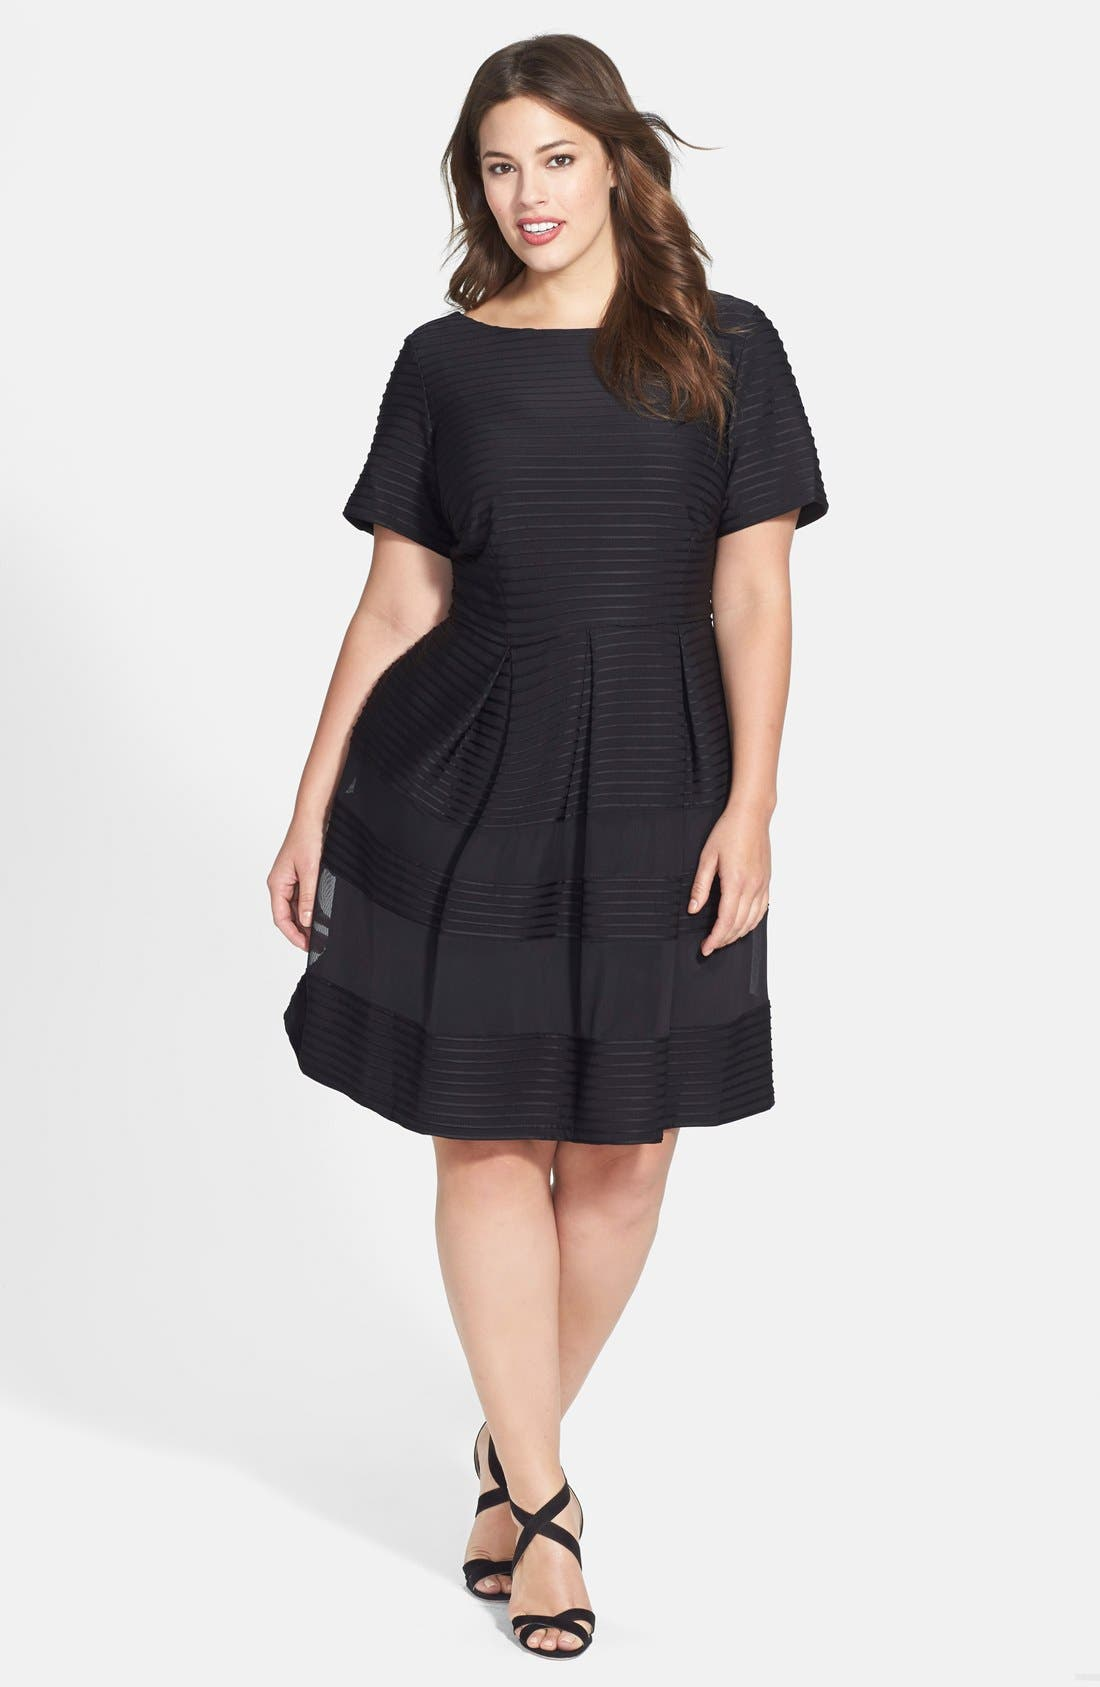 Alternate Image 1 Selected - Taylor Dresses Pintuck Fit & Flare Dress (Plus Size)